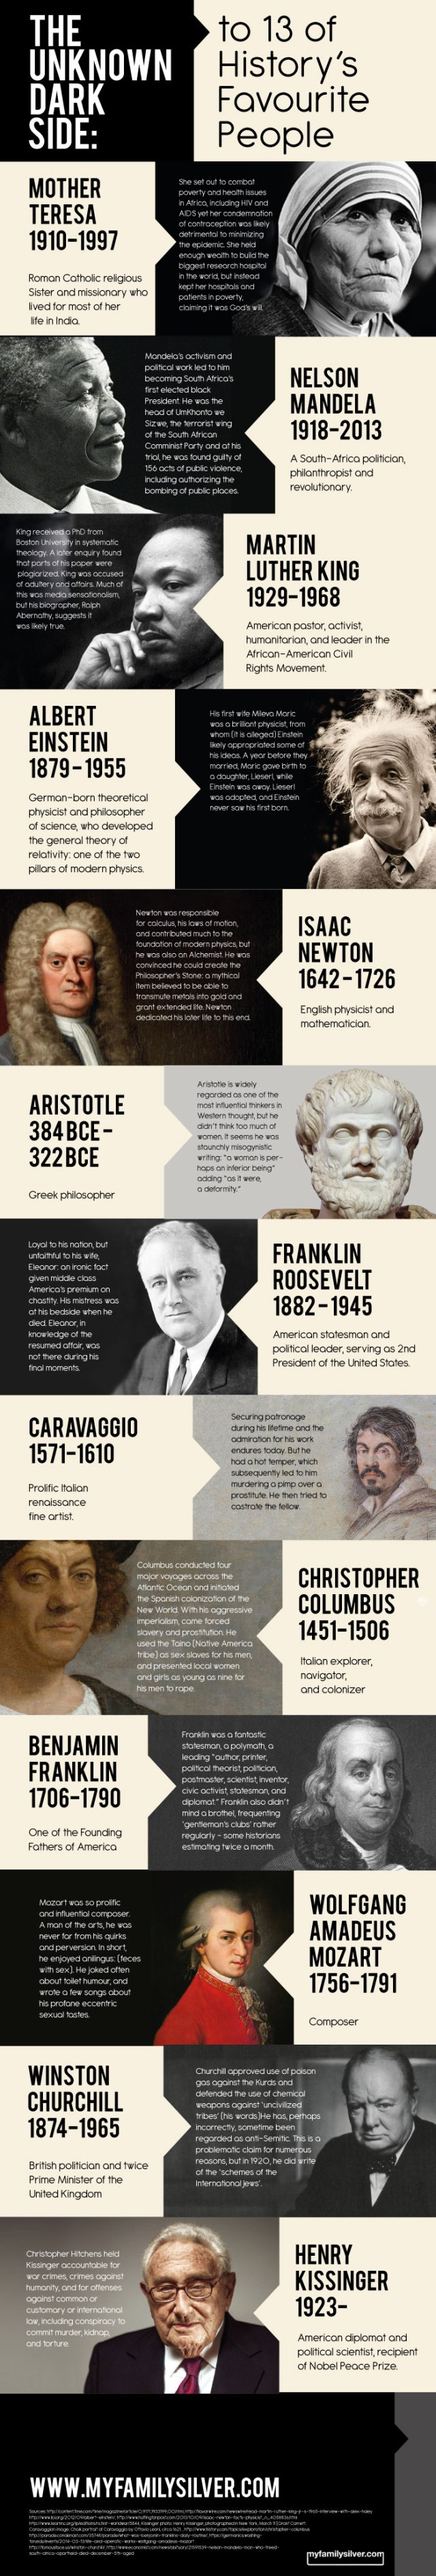 Unknown Dark Side to 13 of History's Favorite People